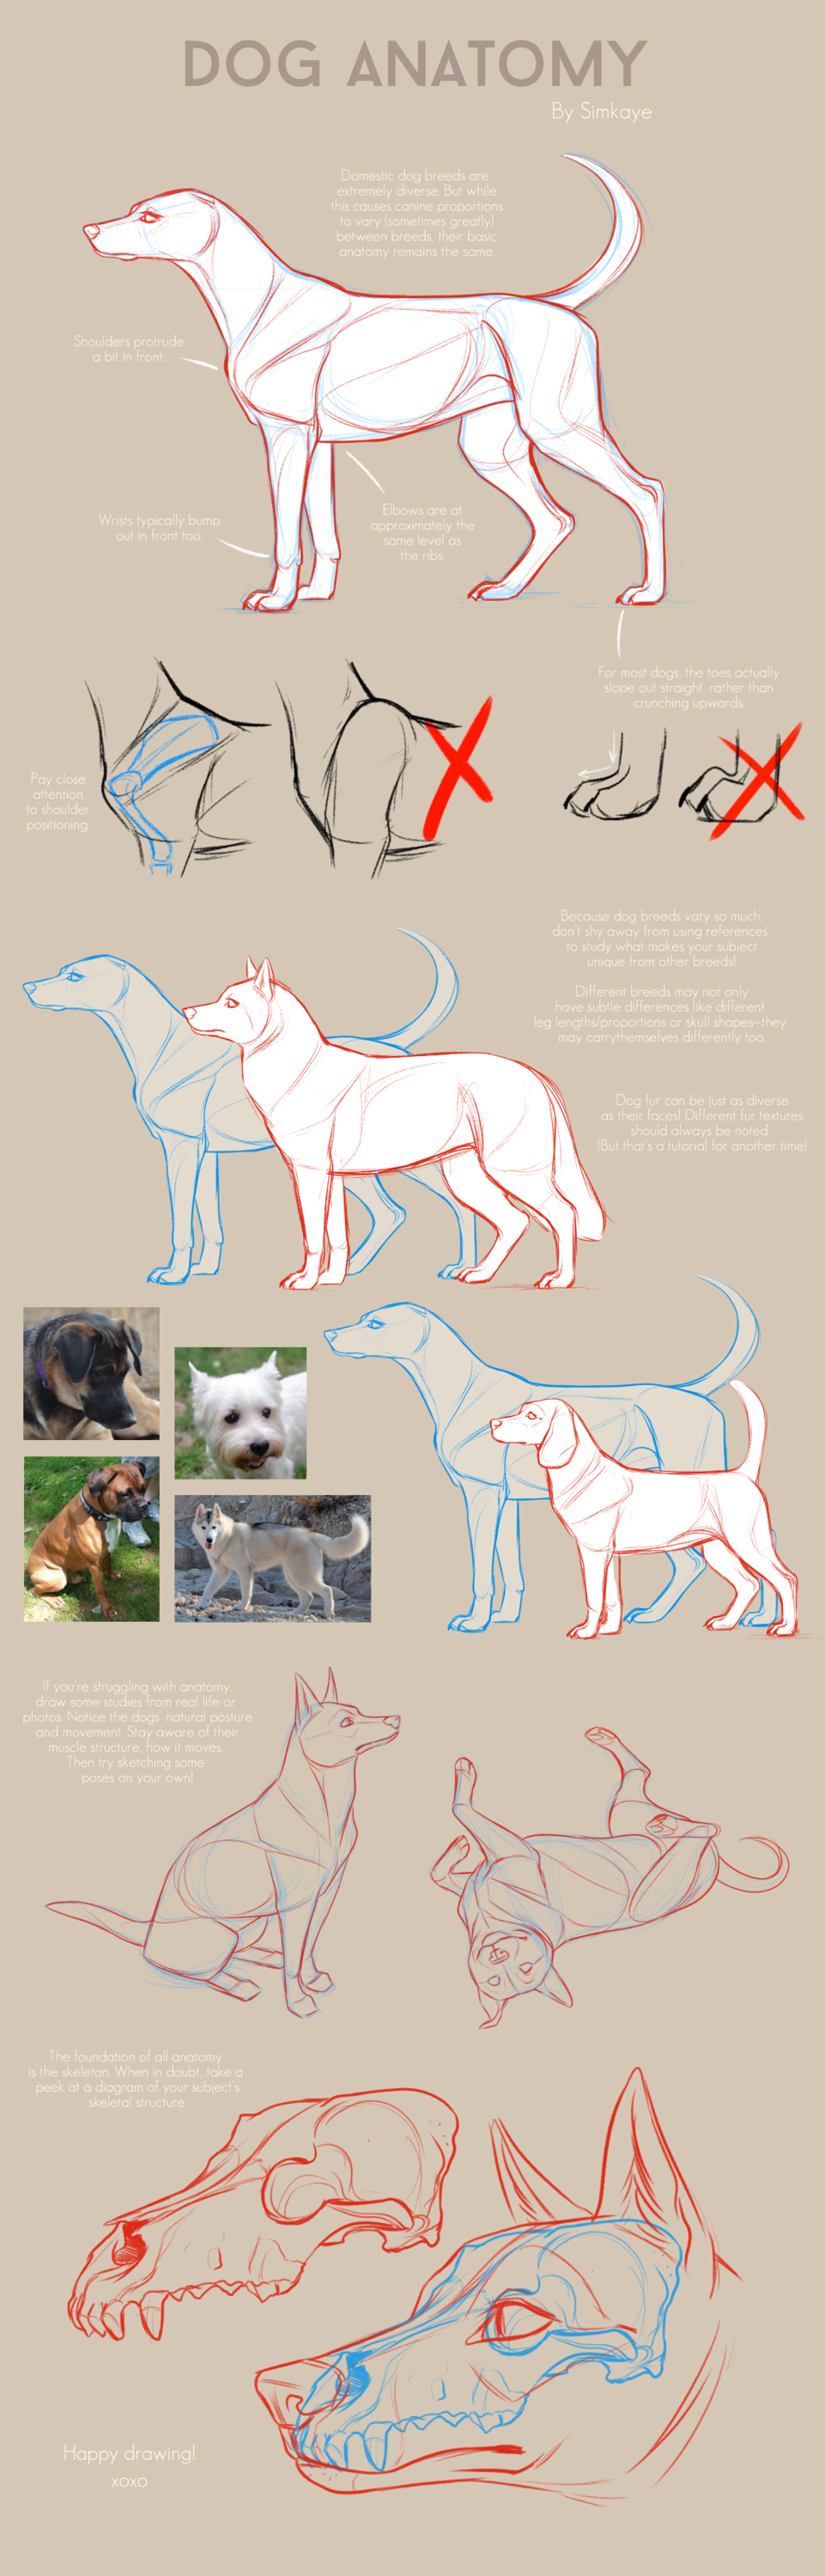 Most recent image: Dog Anatomy